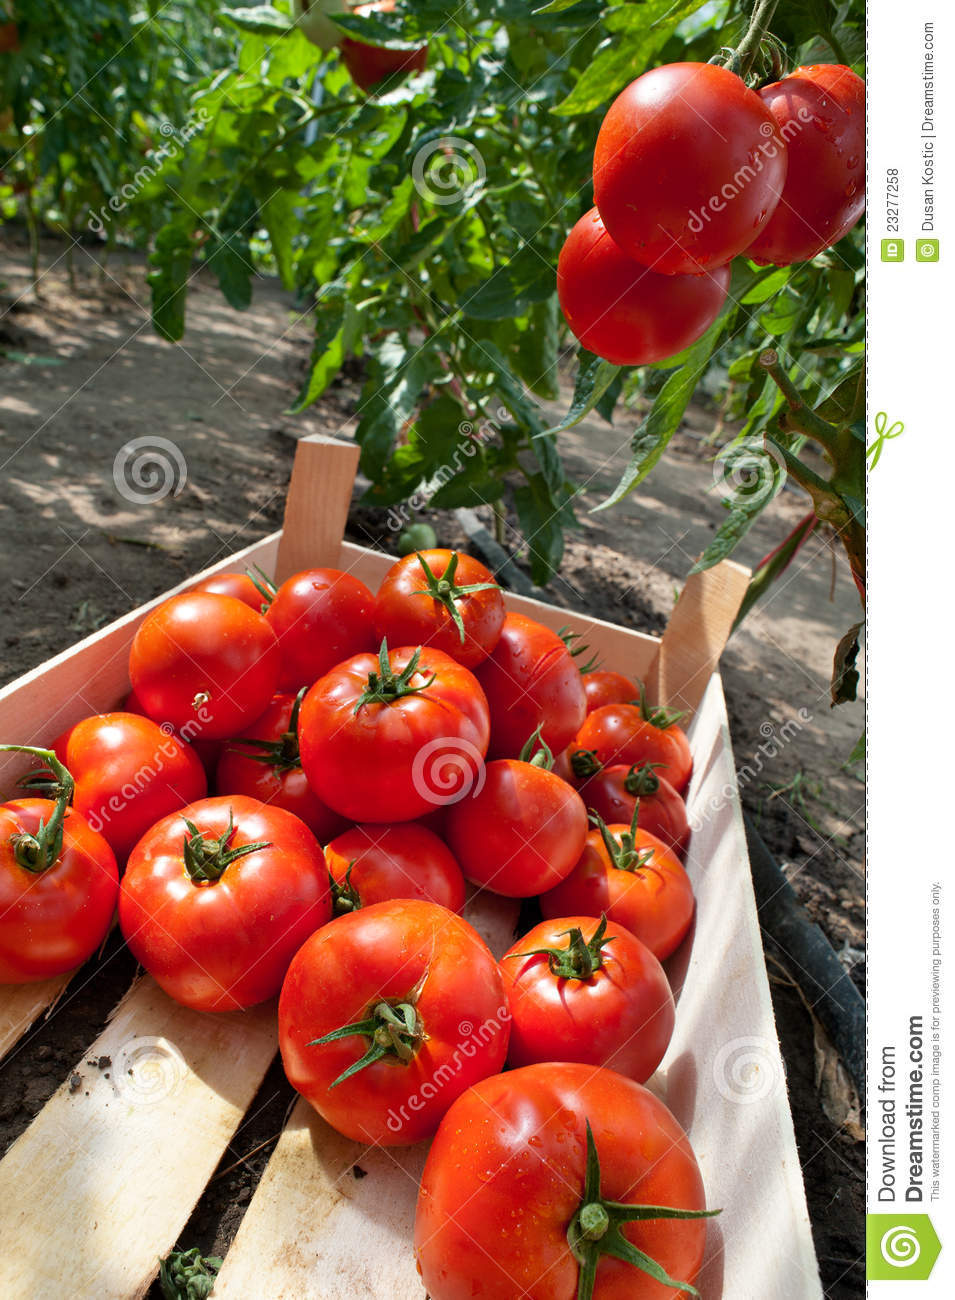 5820a5873bfae84bbded_tomatoes_in_crate.jpg